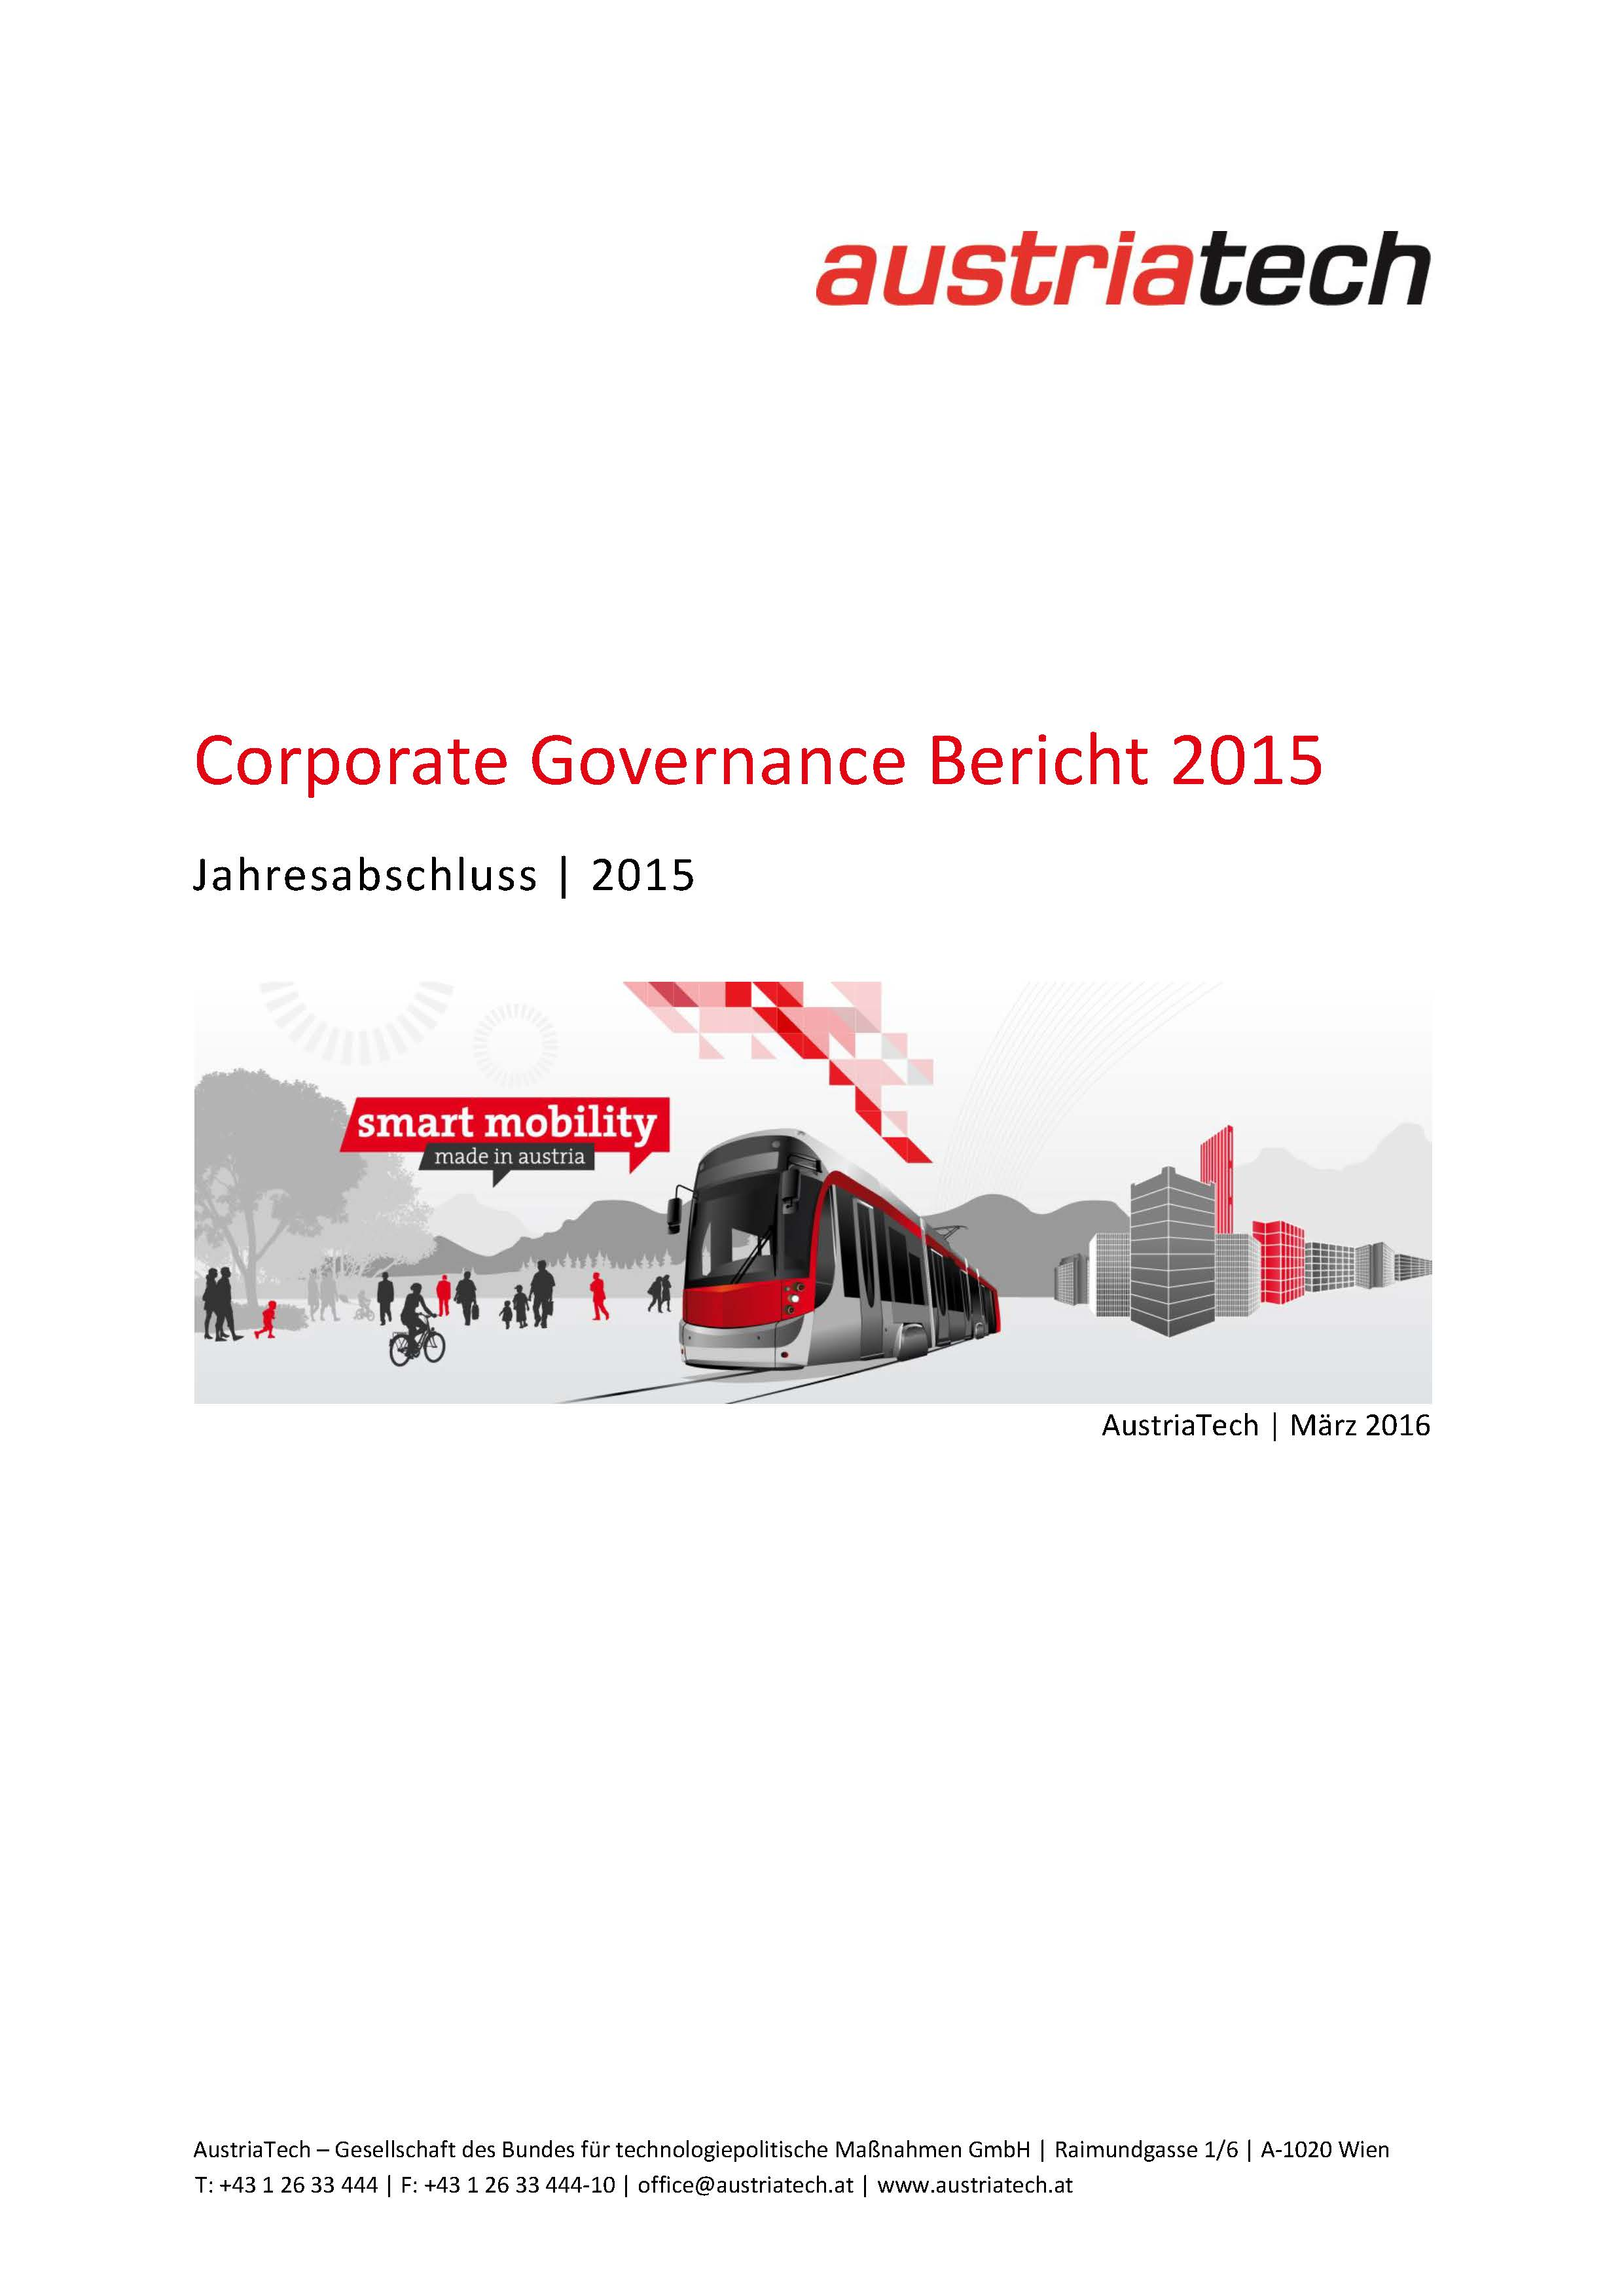 AustriaTech Corporate Governance 2015